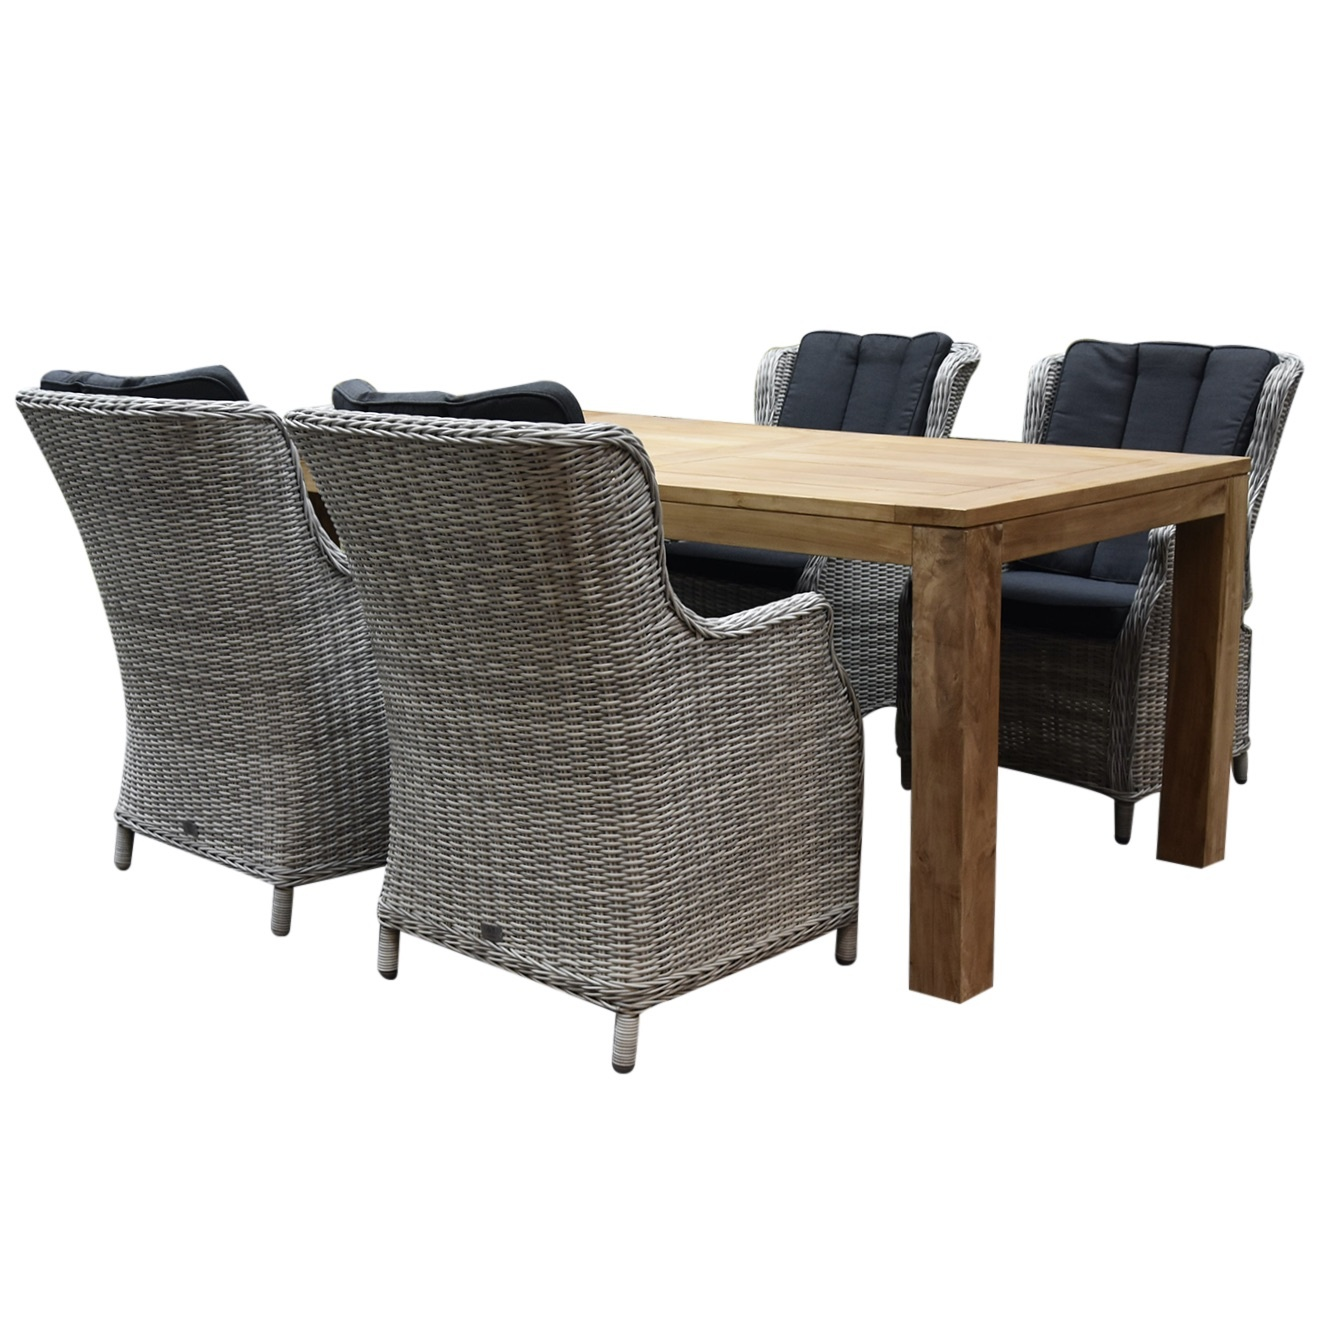 Darwin Krista dining tuinset 180x95xH77,5 cm 5-delig wit